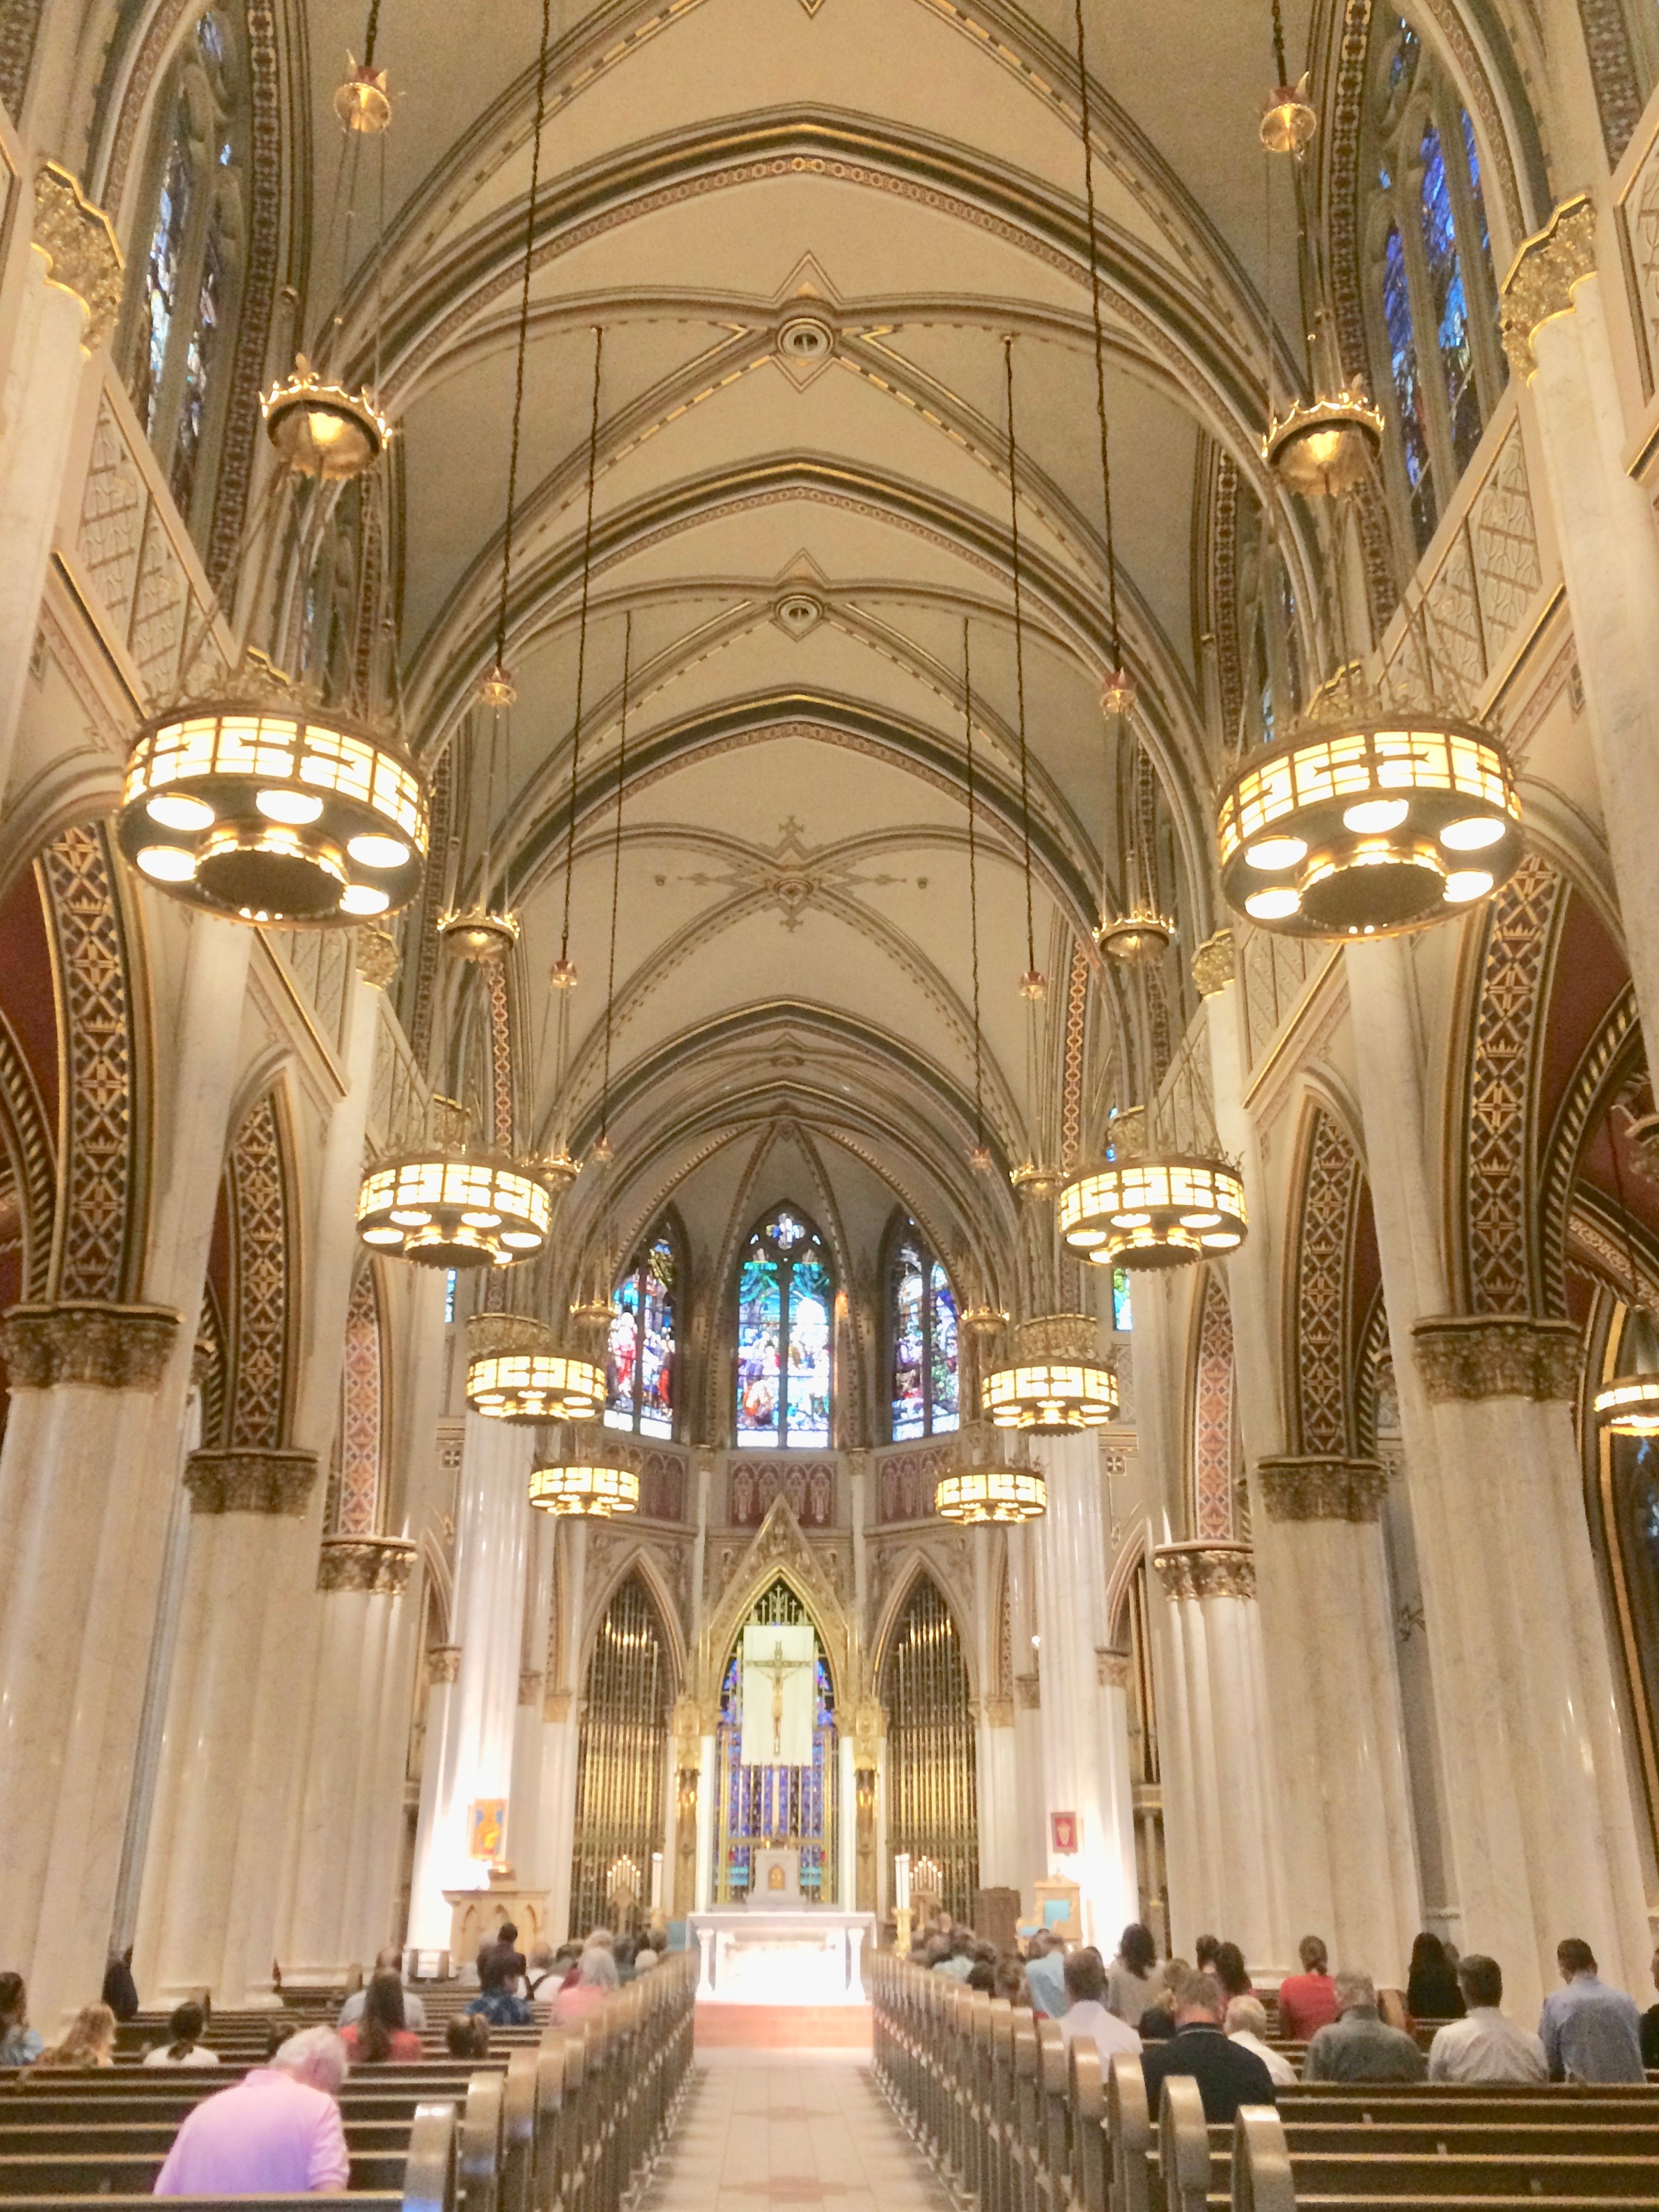 Prelude begins at Cathedral of Saint Helena